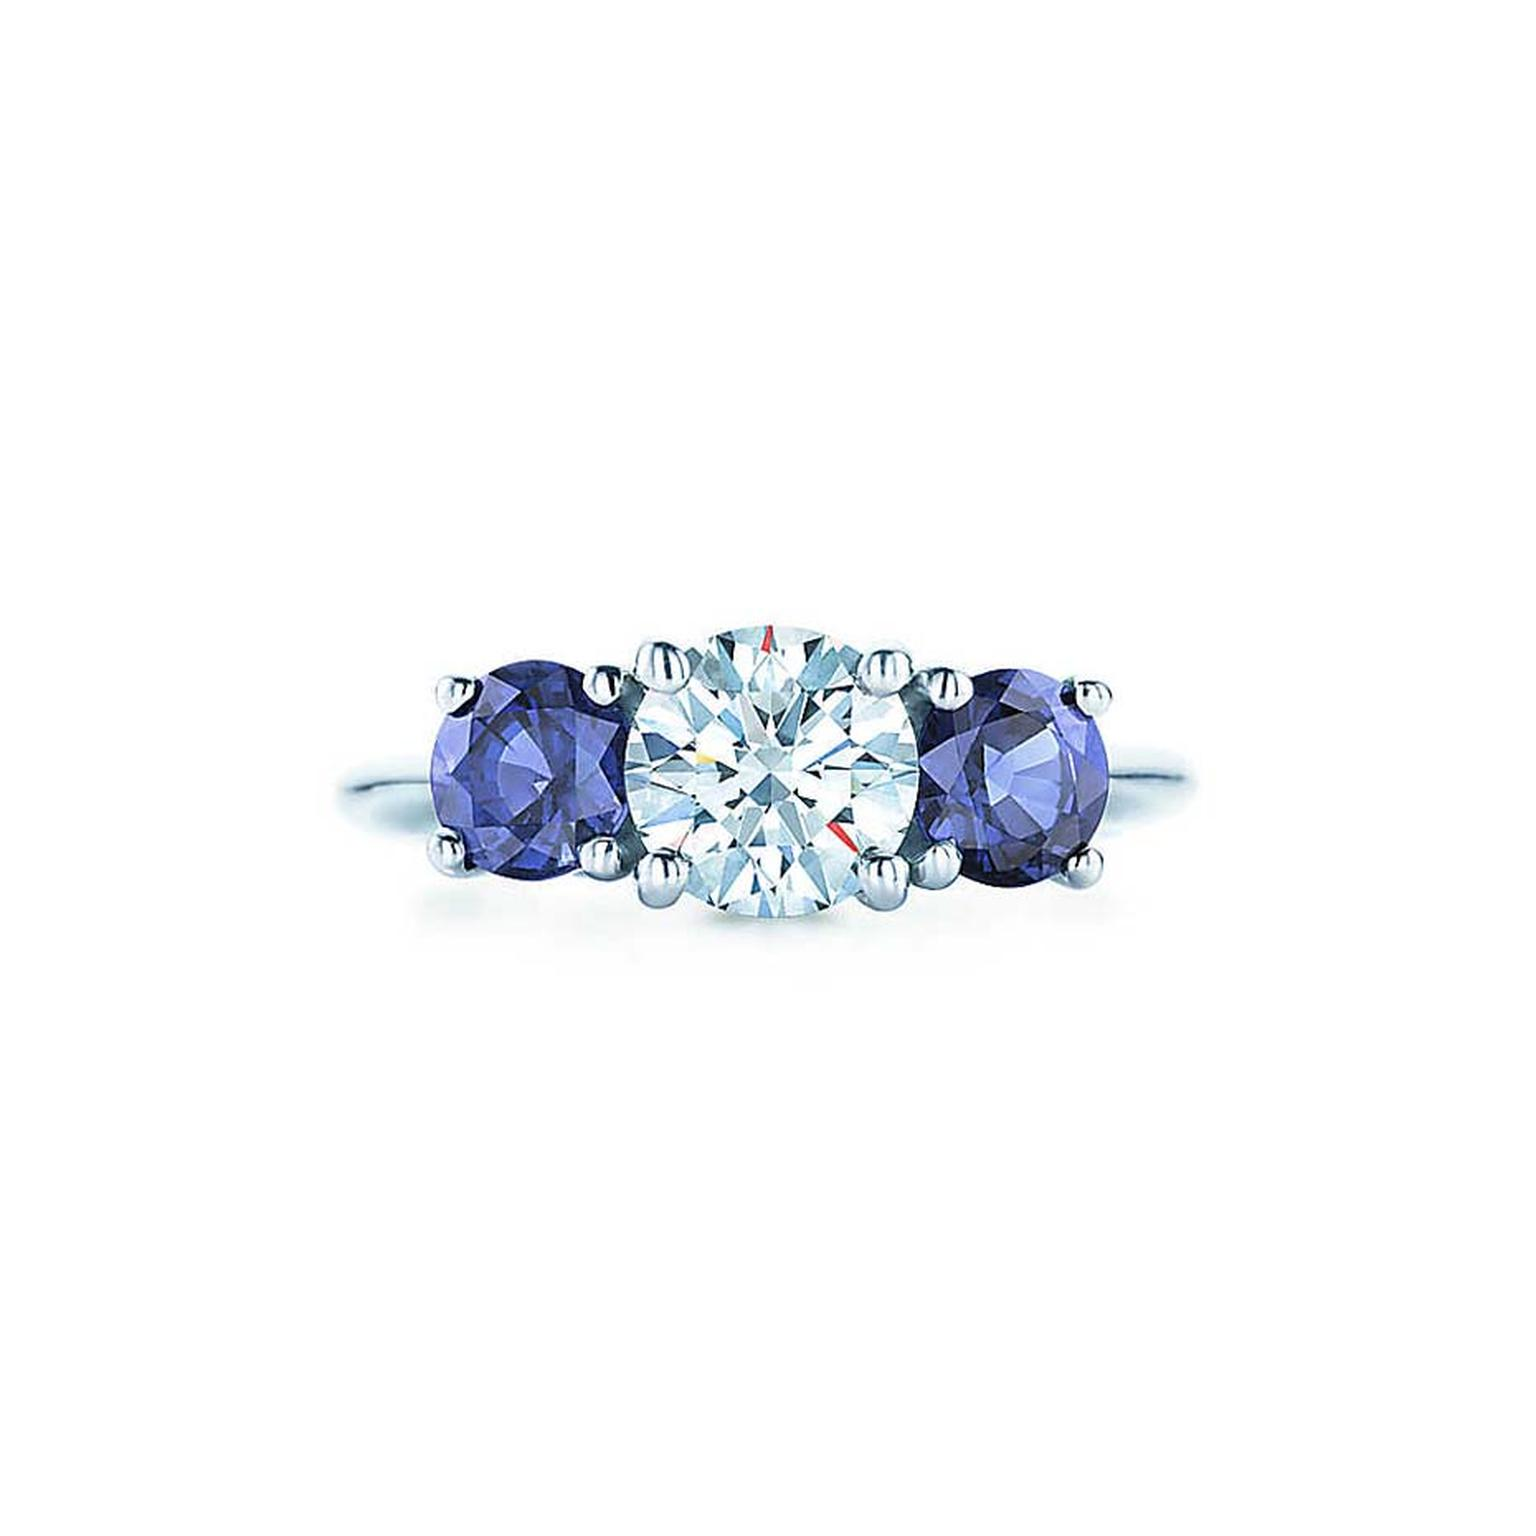 Tiffany & Co. ring featuring a central brilliant-cut diamond flanked by a sapphire on either side.